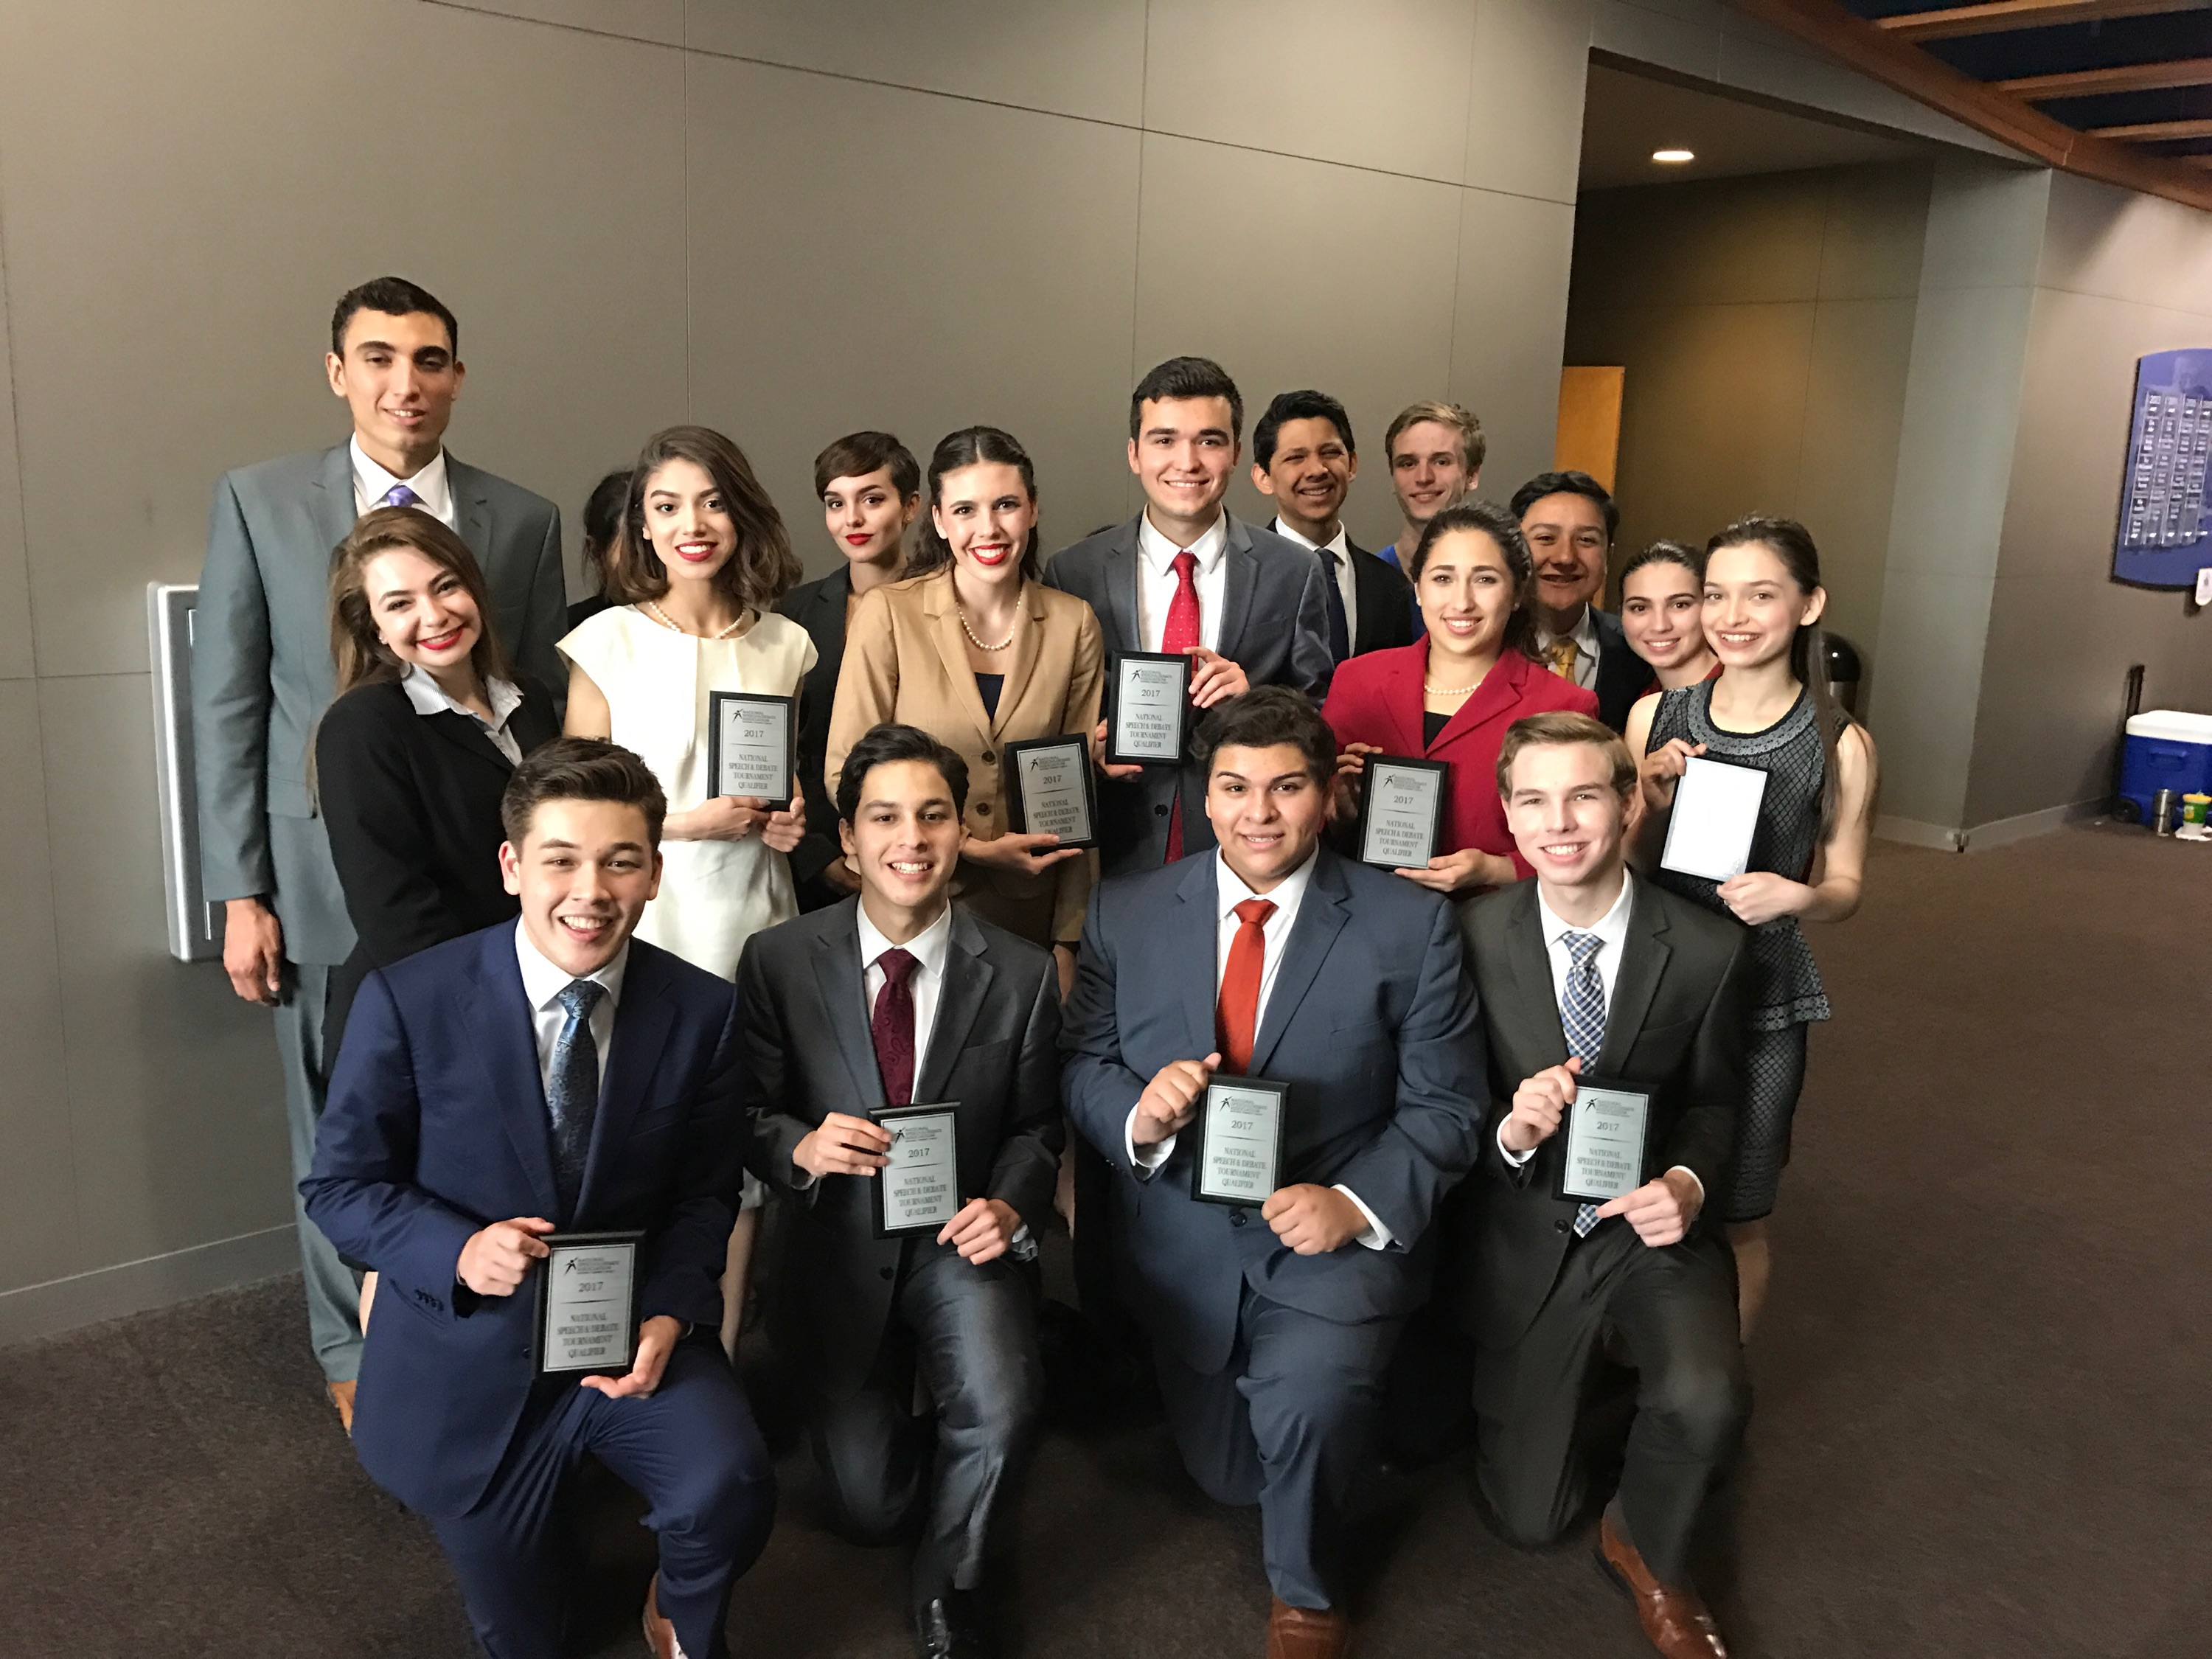 Ten South SDD members headed to Nationals